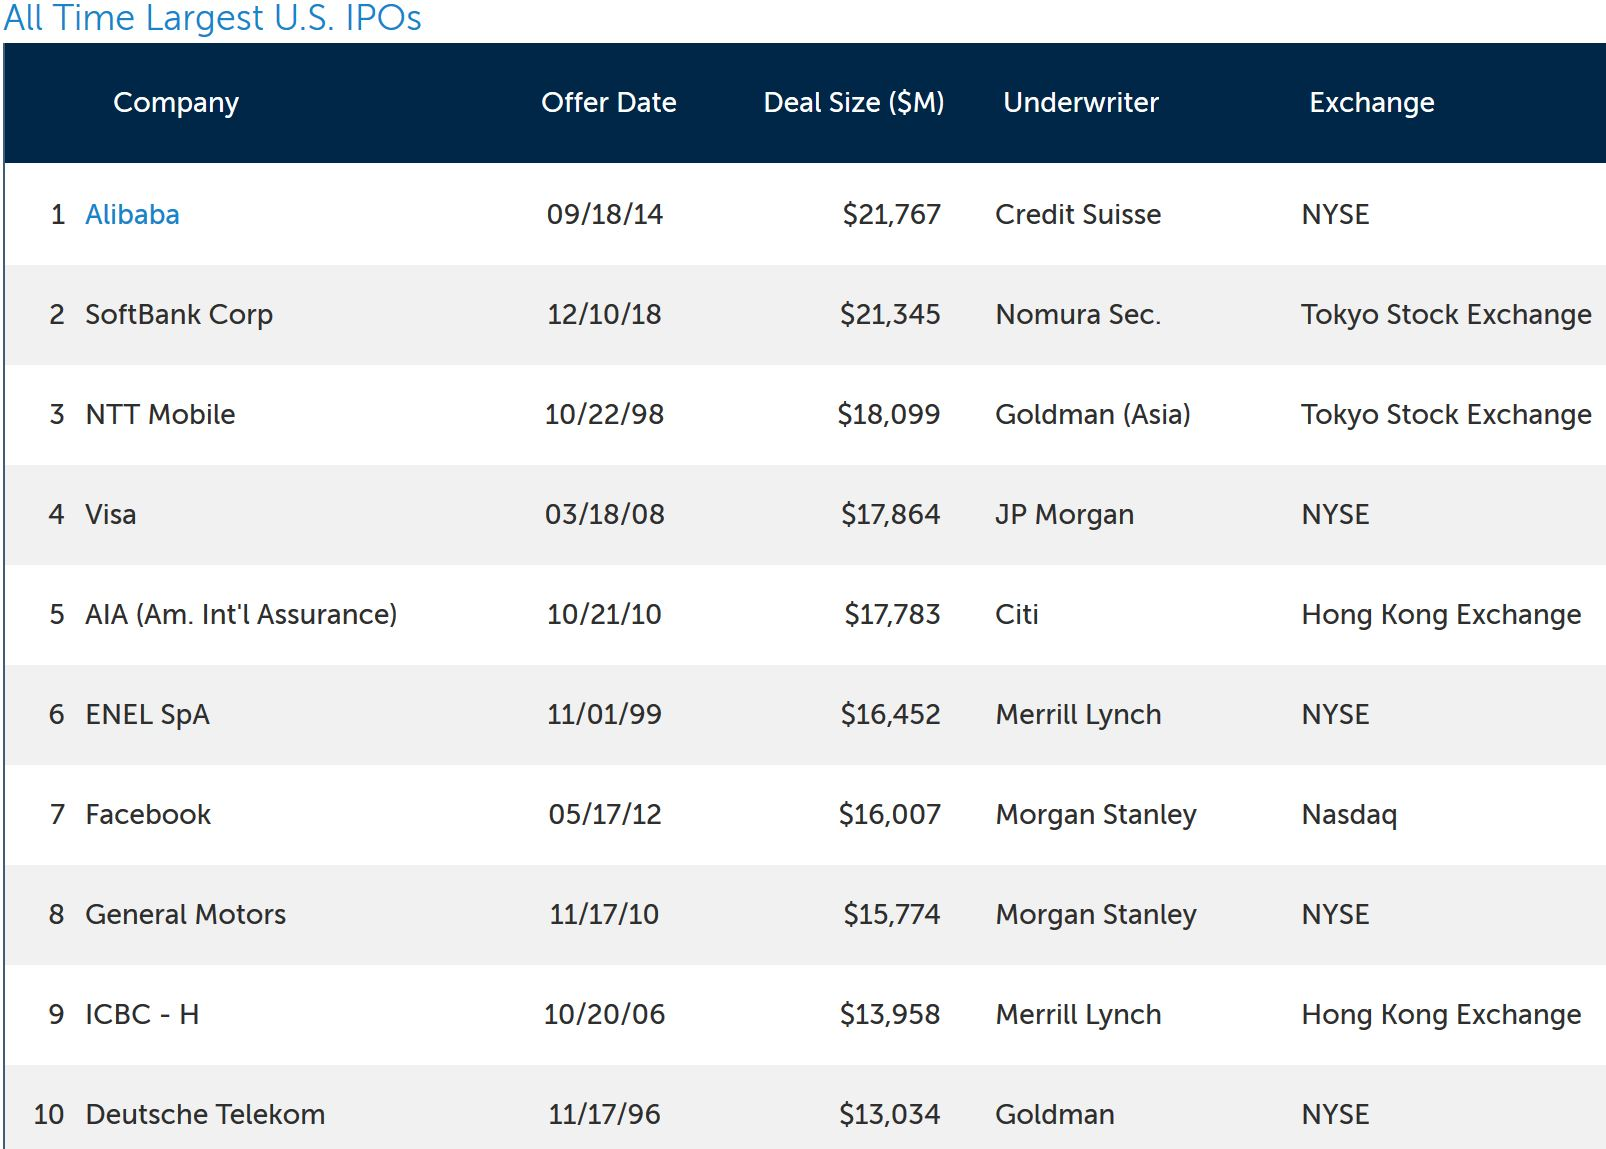 Top IPOs by Renaissance Capital